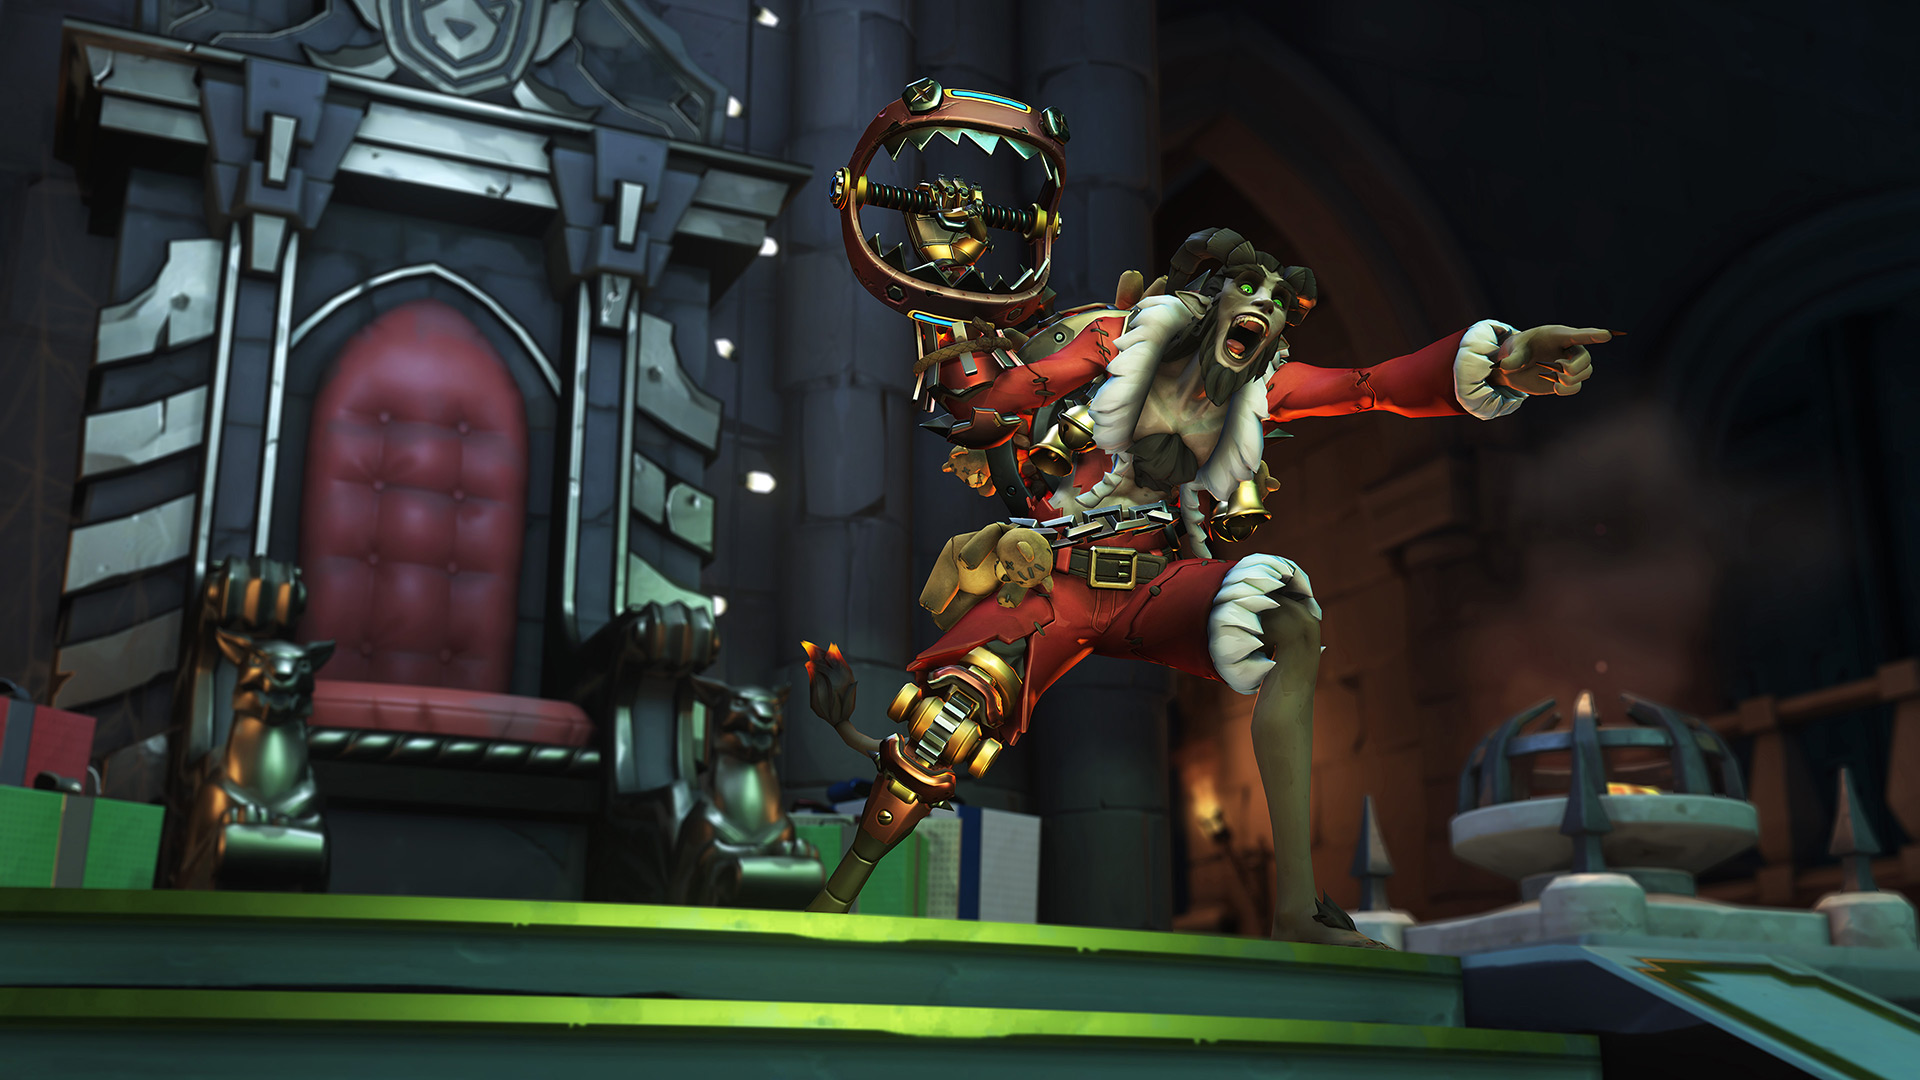 Overwatch Christmas 2019 Skins.Overwatch Kicks Off Winter Wonderland With An Amazing